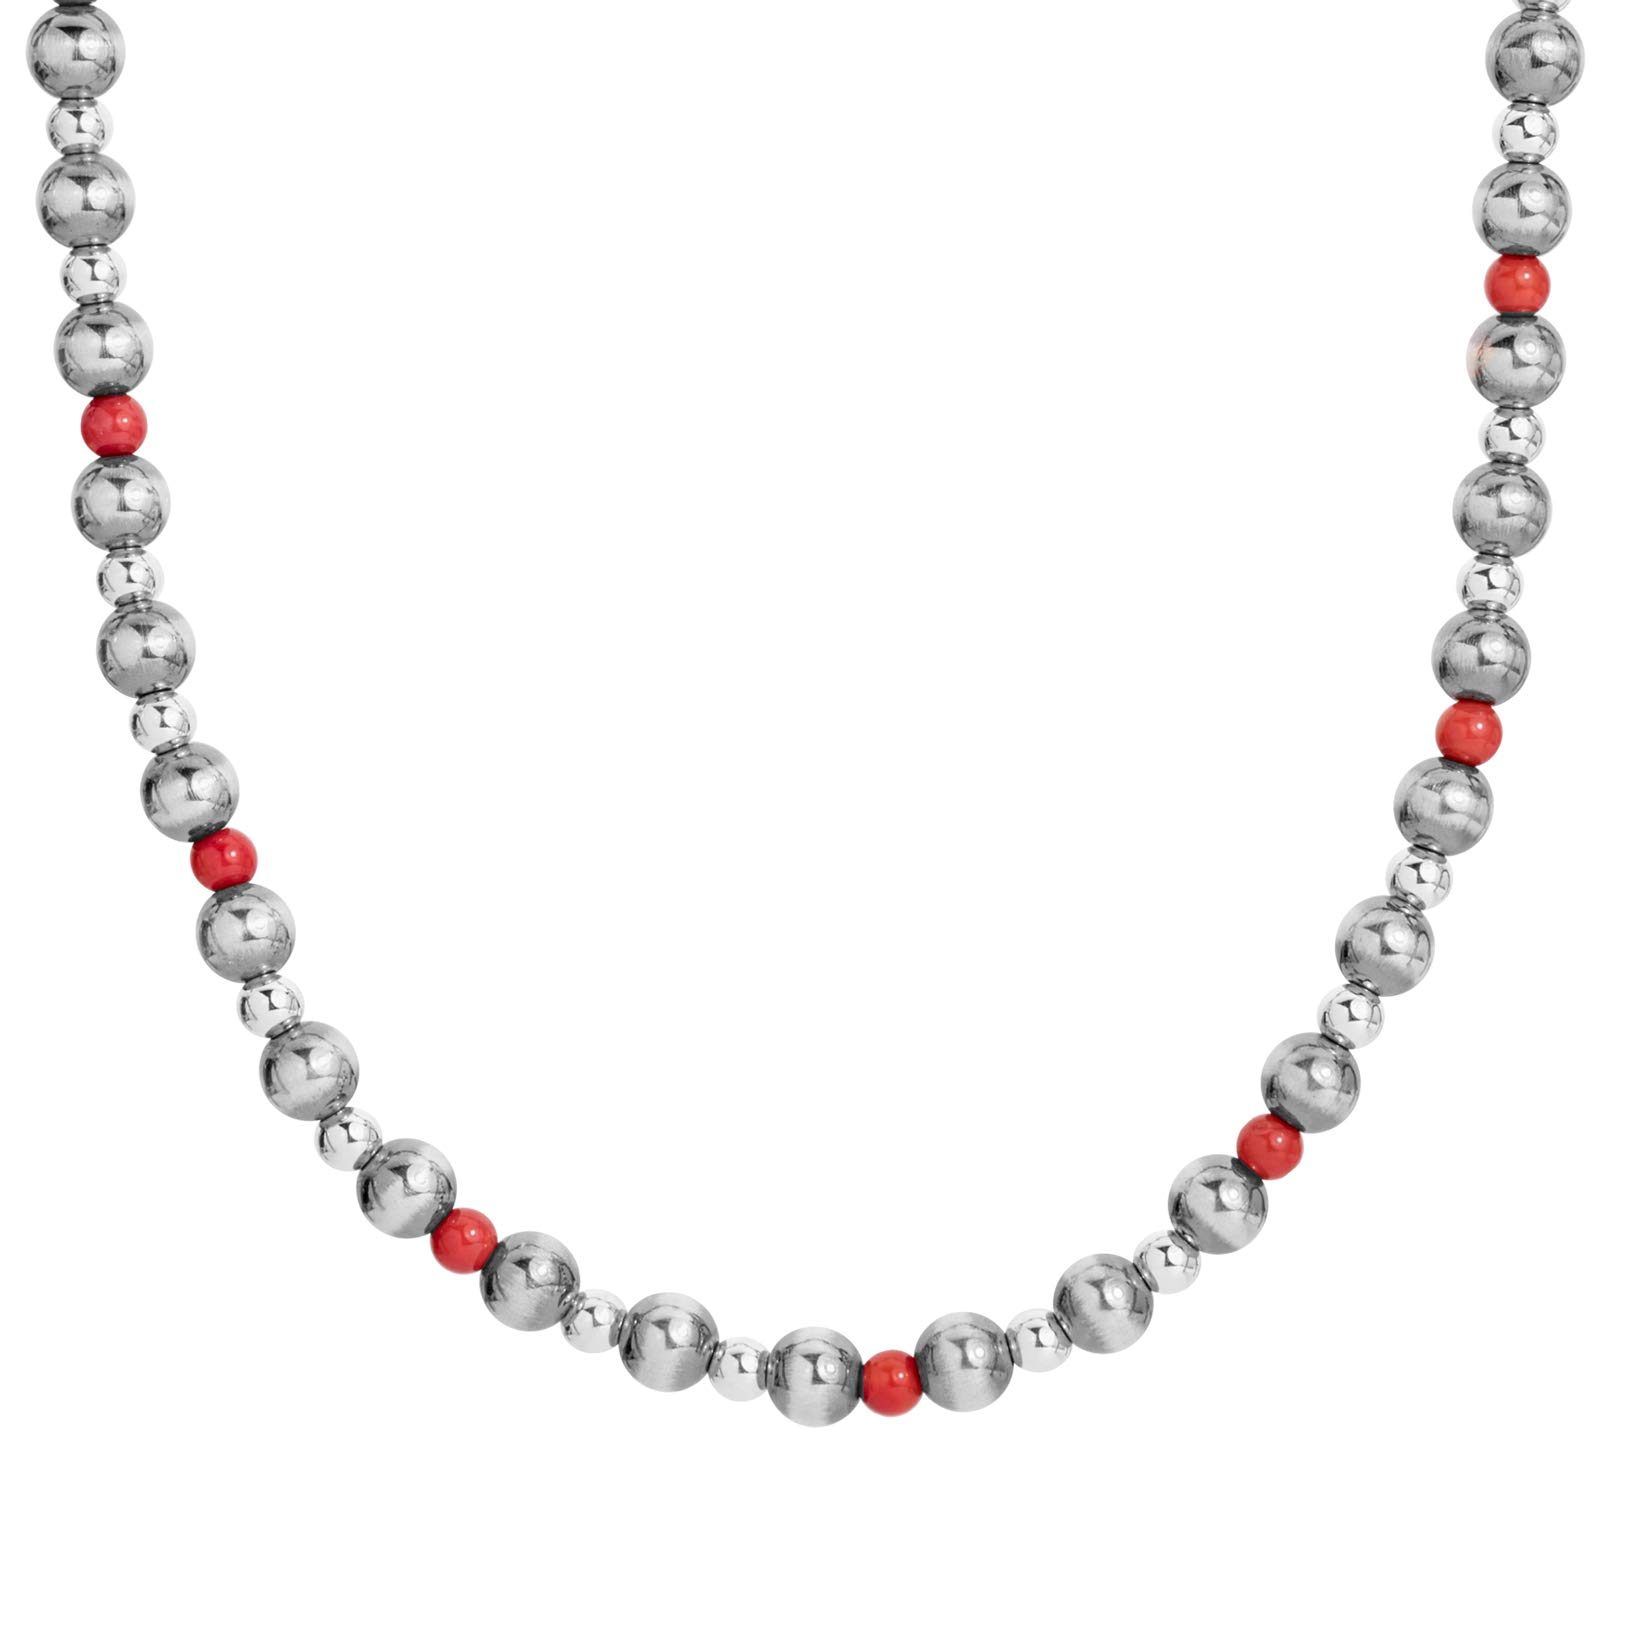 American West Sterling Silver Red Coral Gemstone Beaded Necklace 15 to 17 Inch